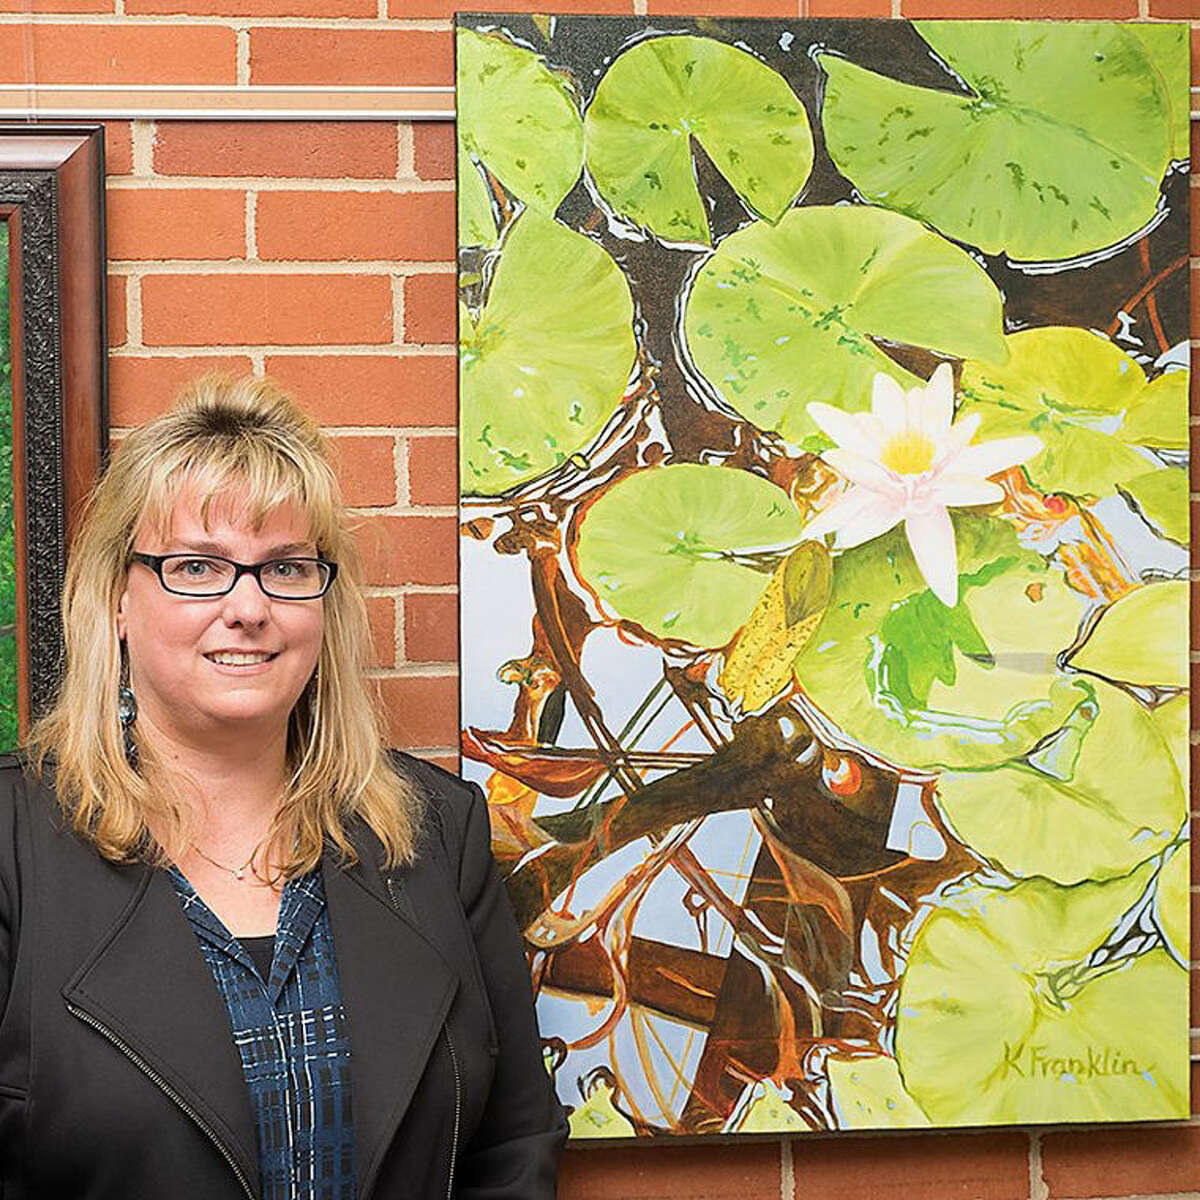 """Karen Franklin of Midland won the Best of Show award for her piece, an acrylic painting titled """"Lily and Light."""""""